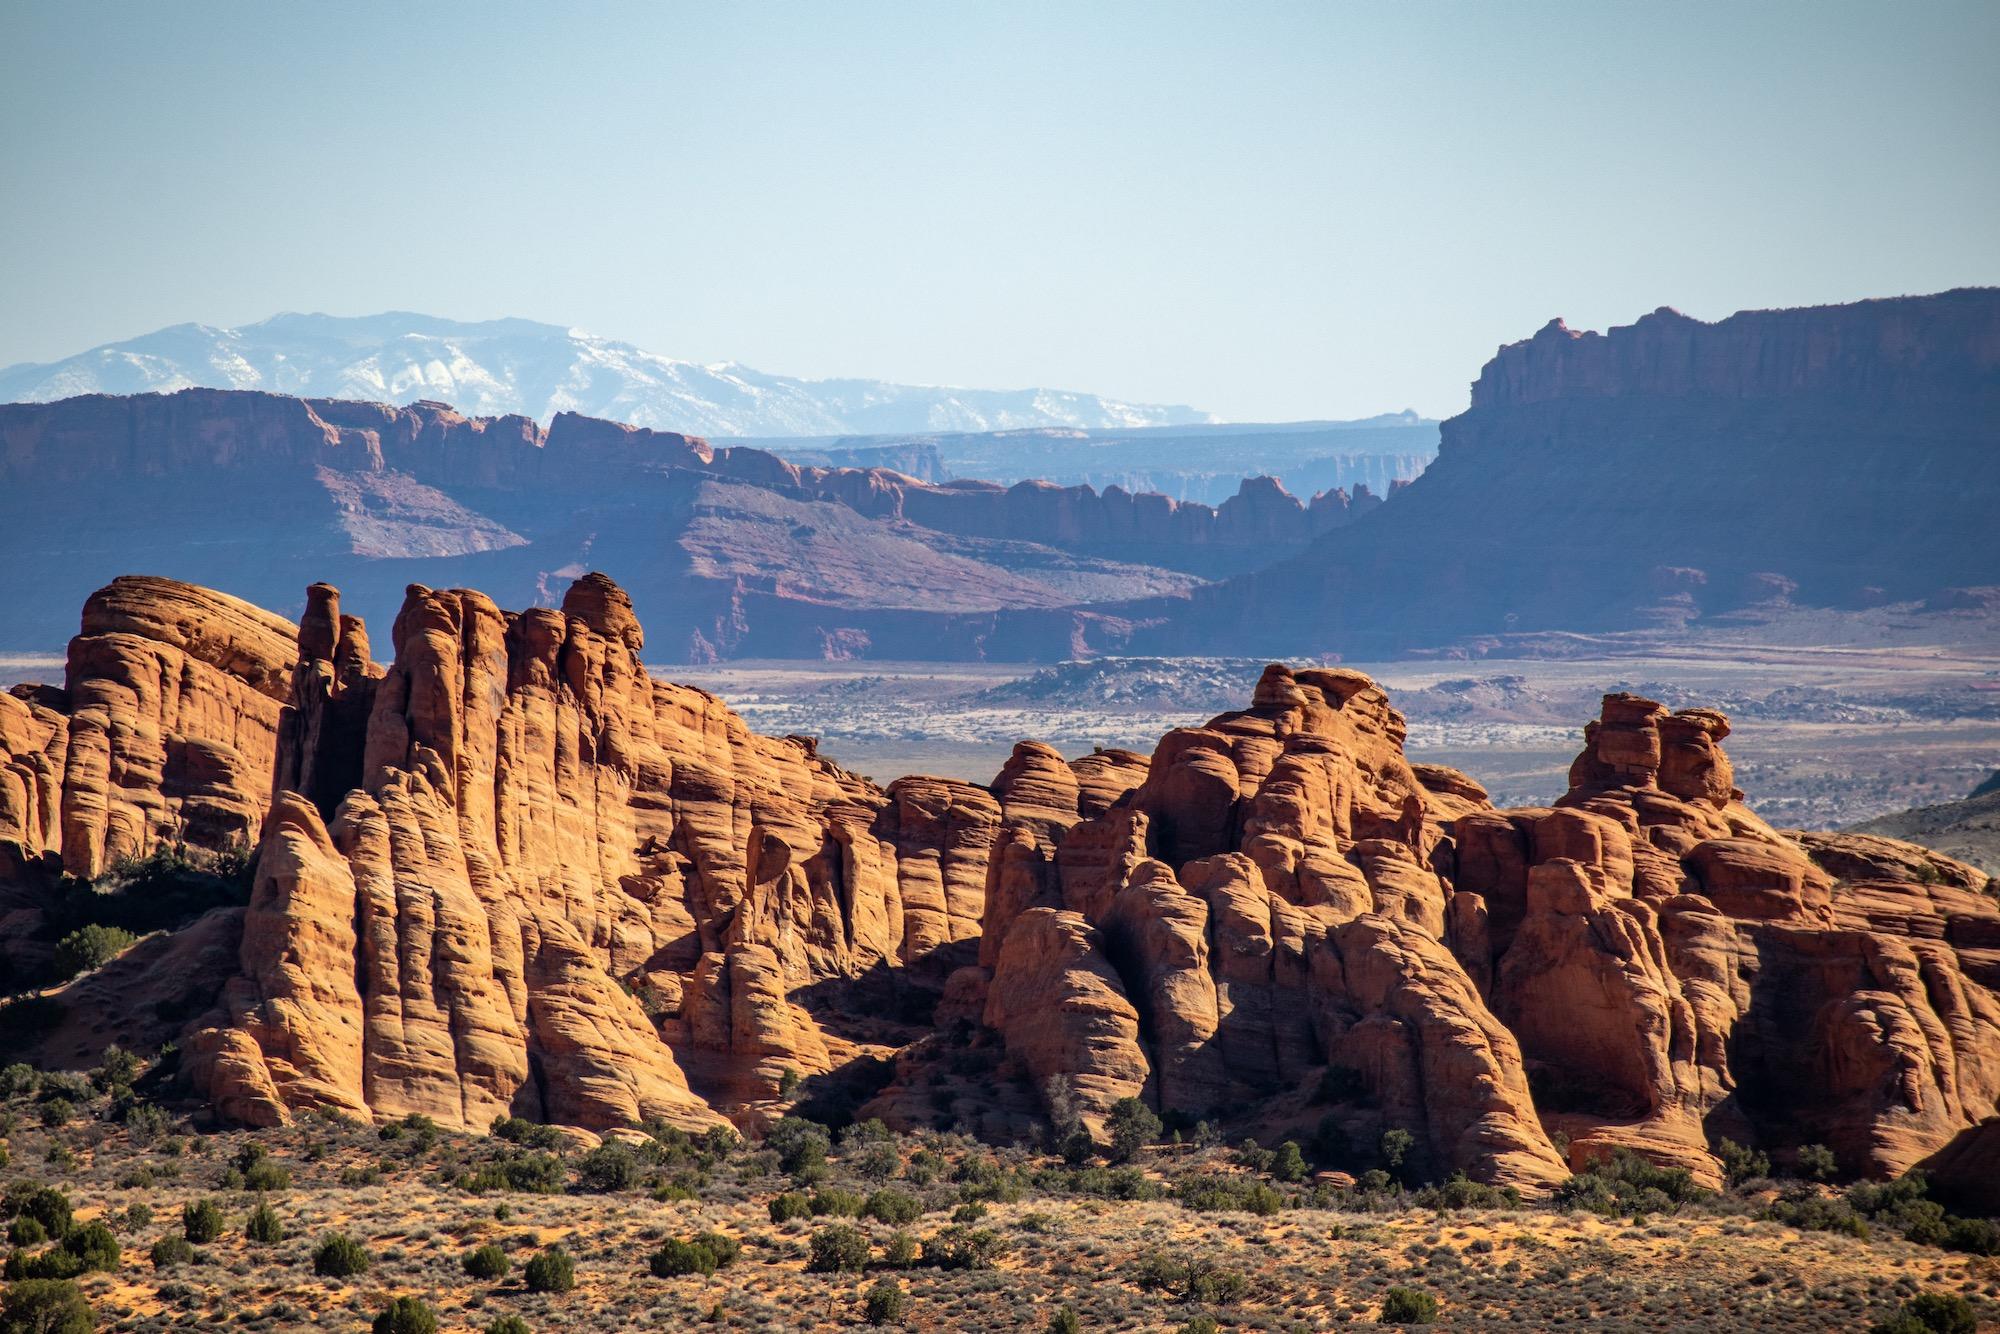 Layers and layers of scenery in Arches.